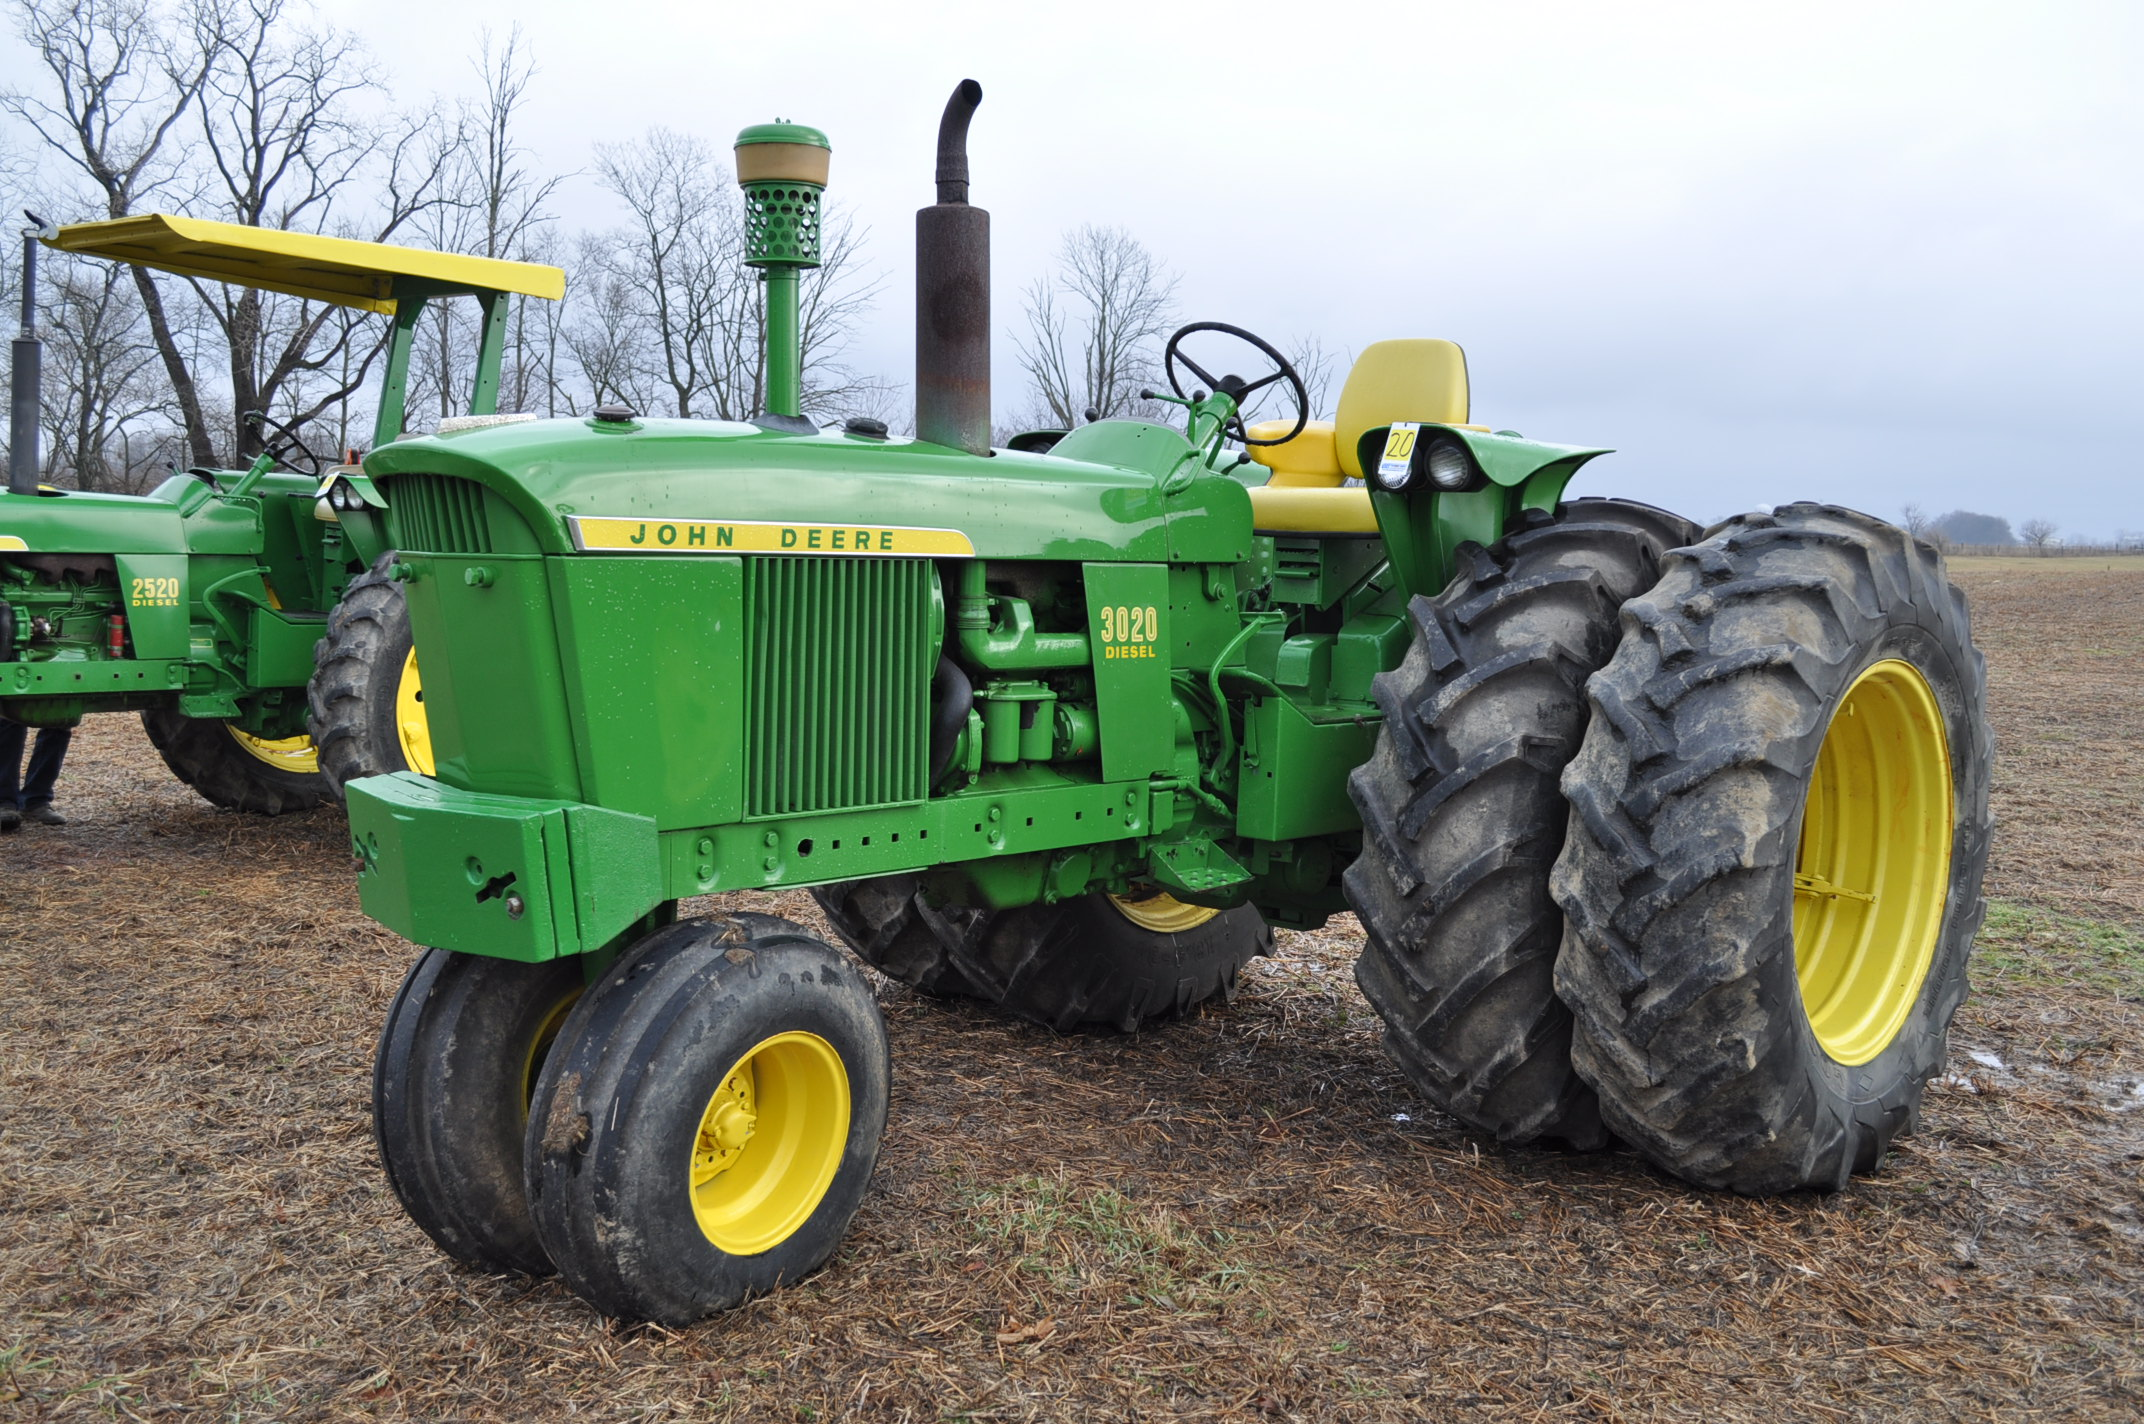 John Deere 3020 tractor, diesel, 18.4-34 rear, clamp on duals, 11L-15 narrow front, Syncro, 2